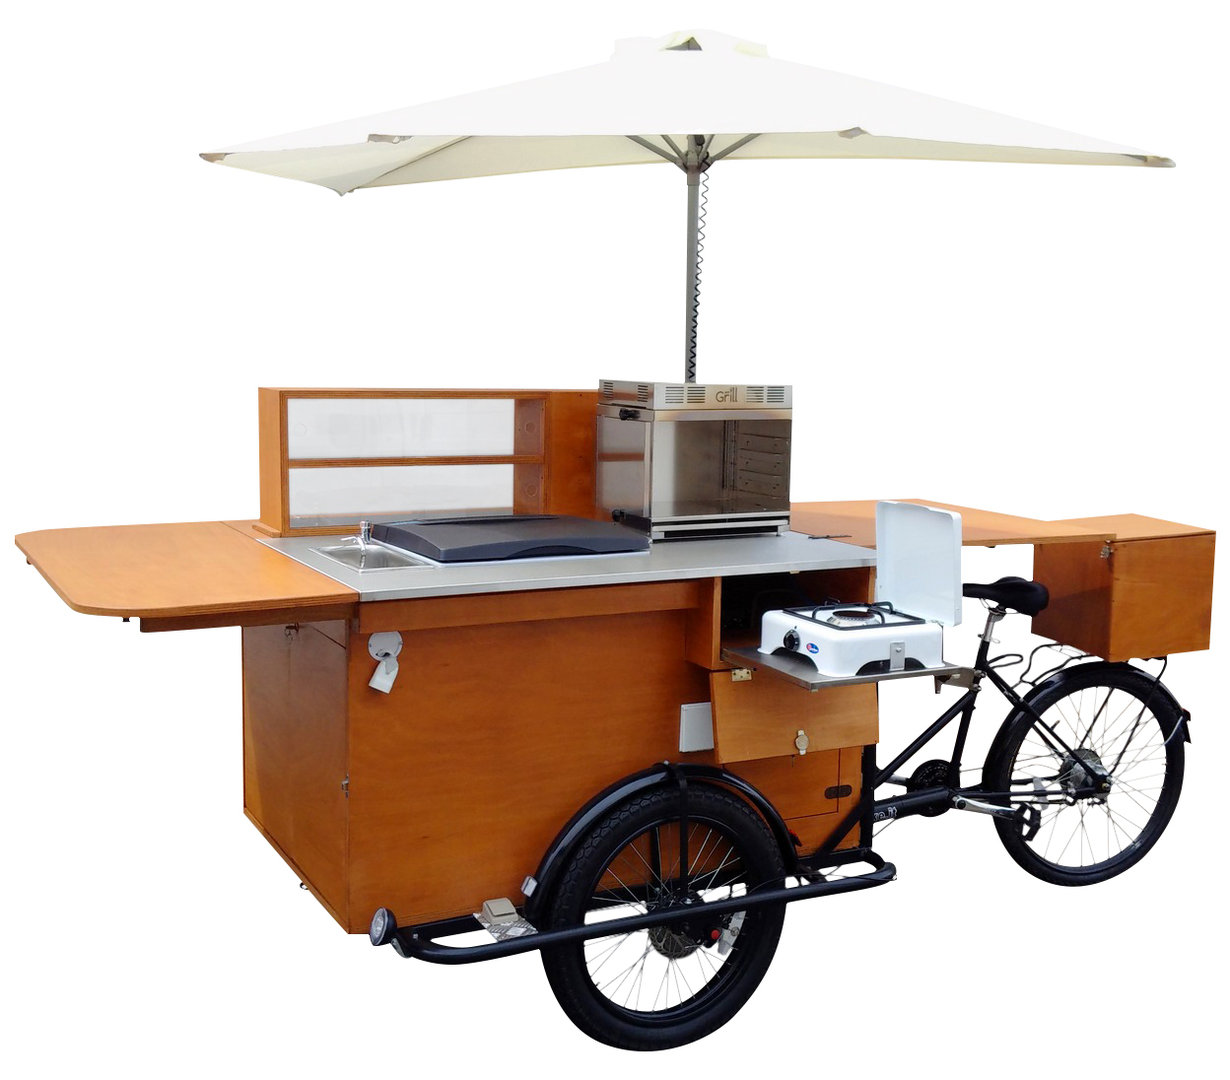 STREET FOOD BIKE PASTRY mobile